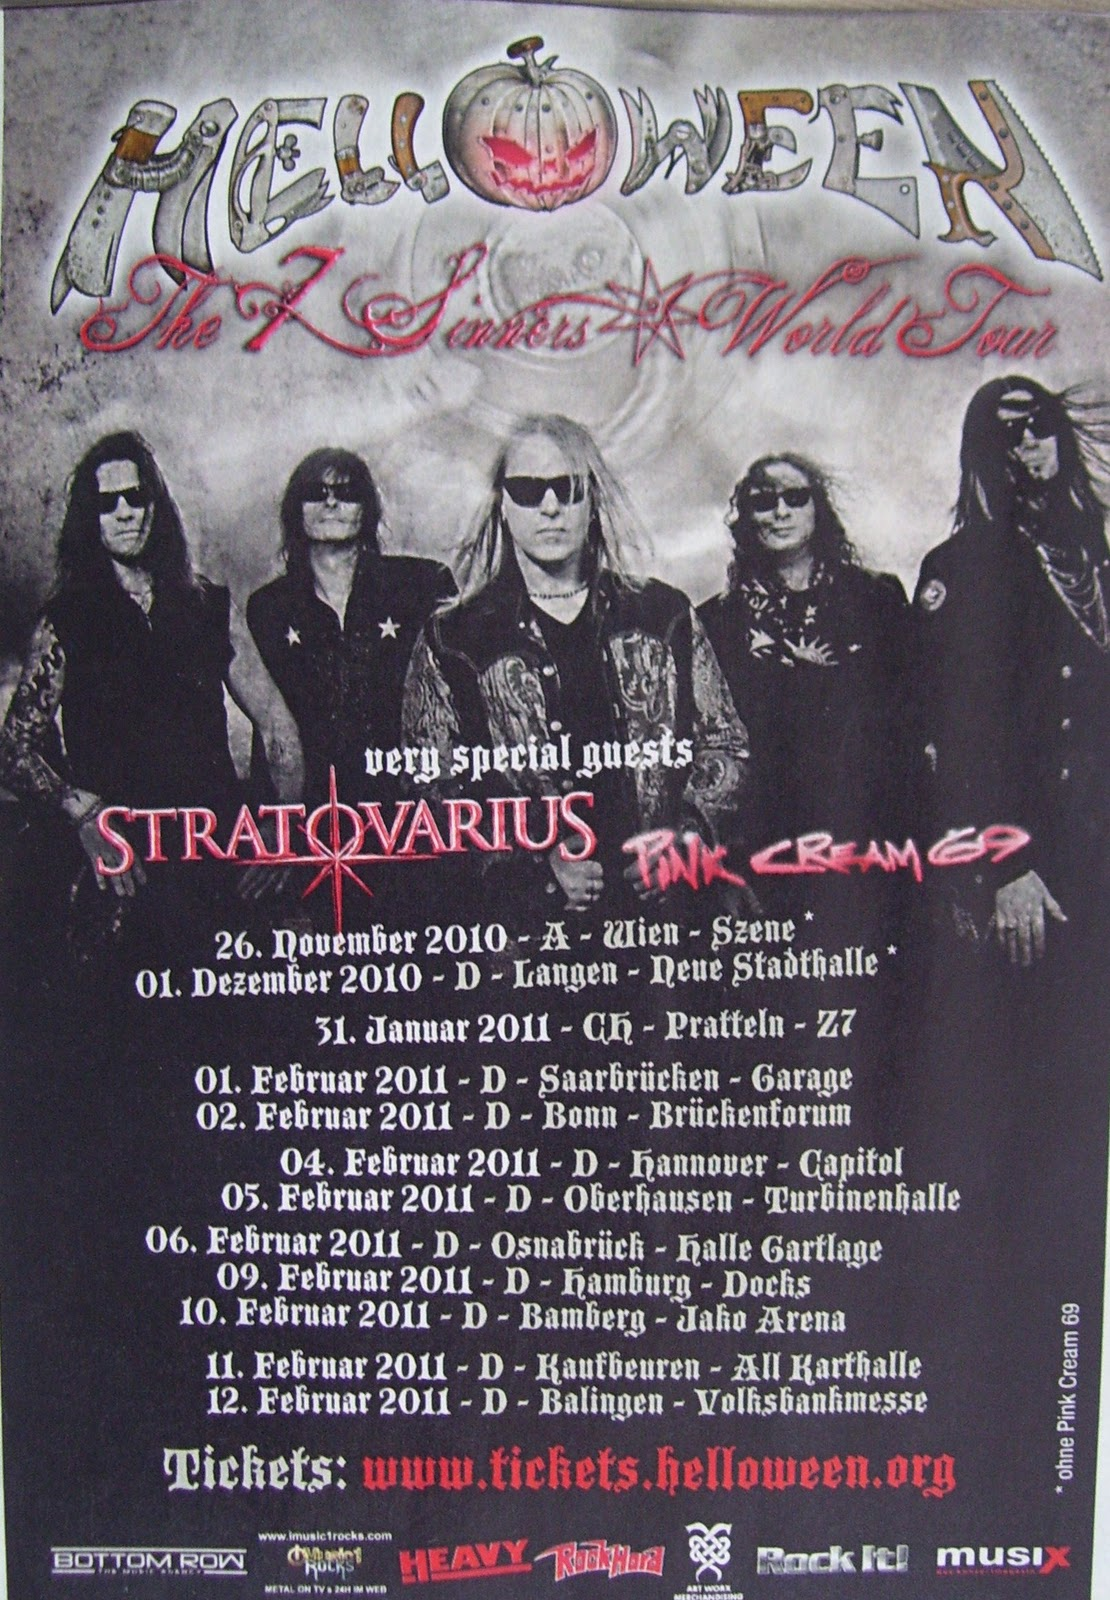 7 Sinners World Tour in Deutschland